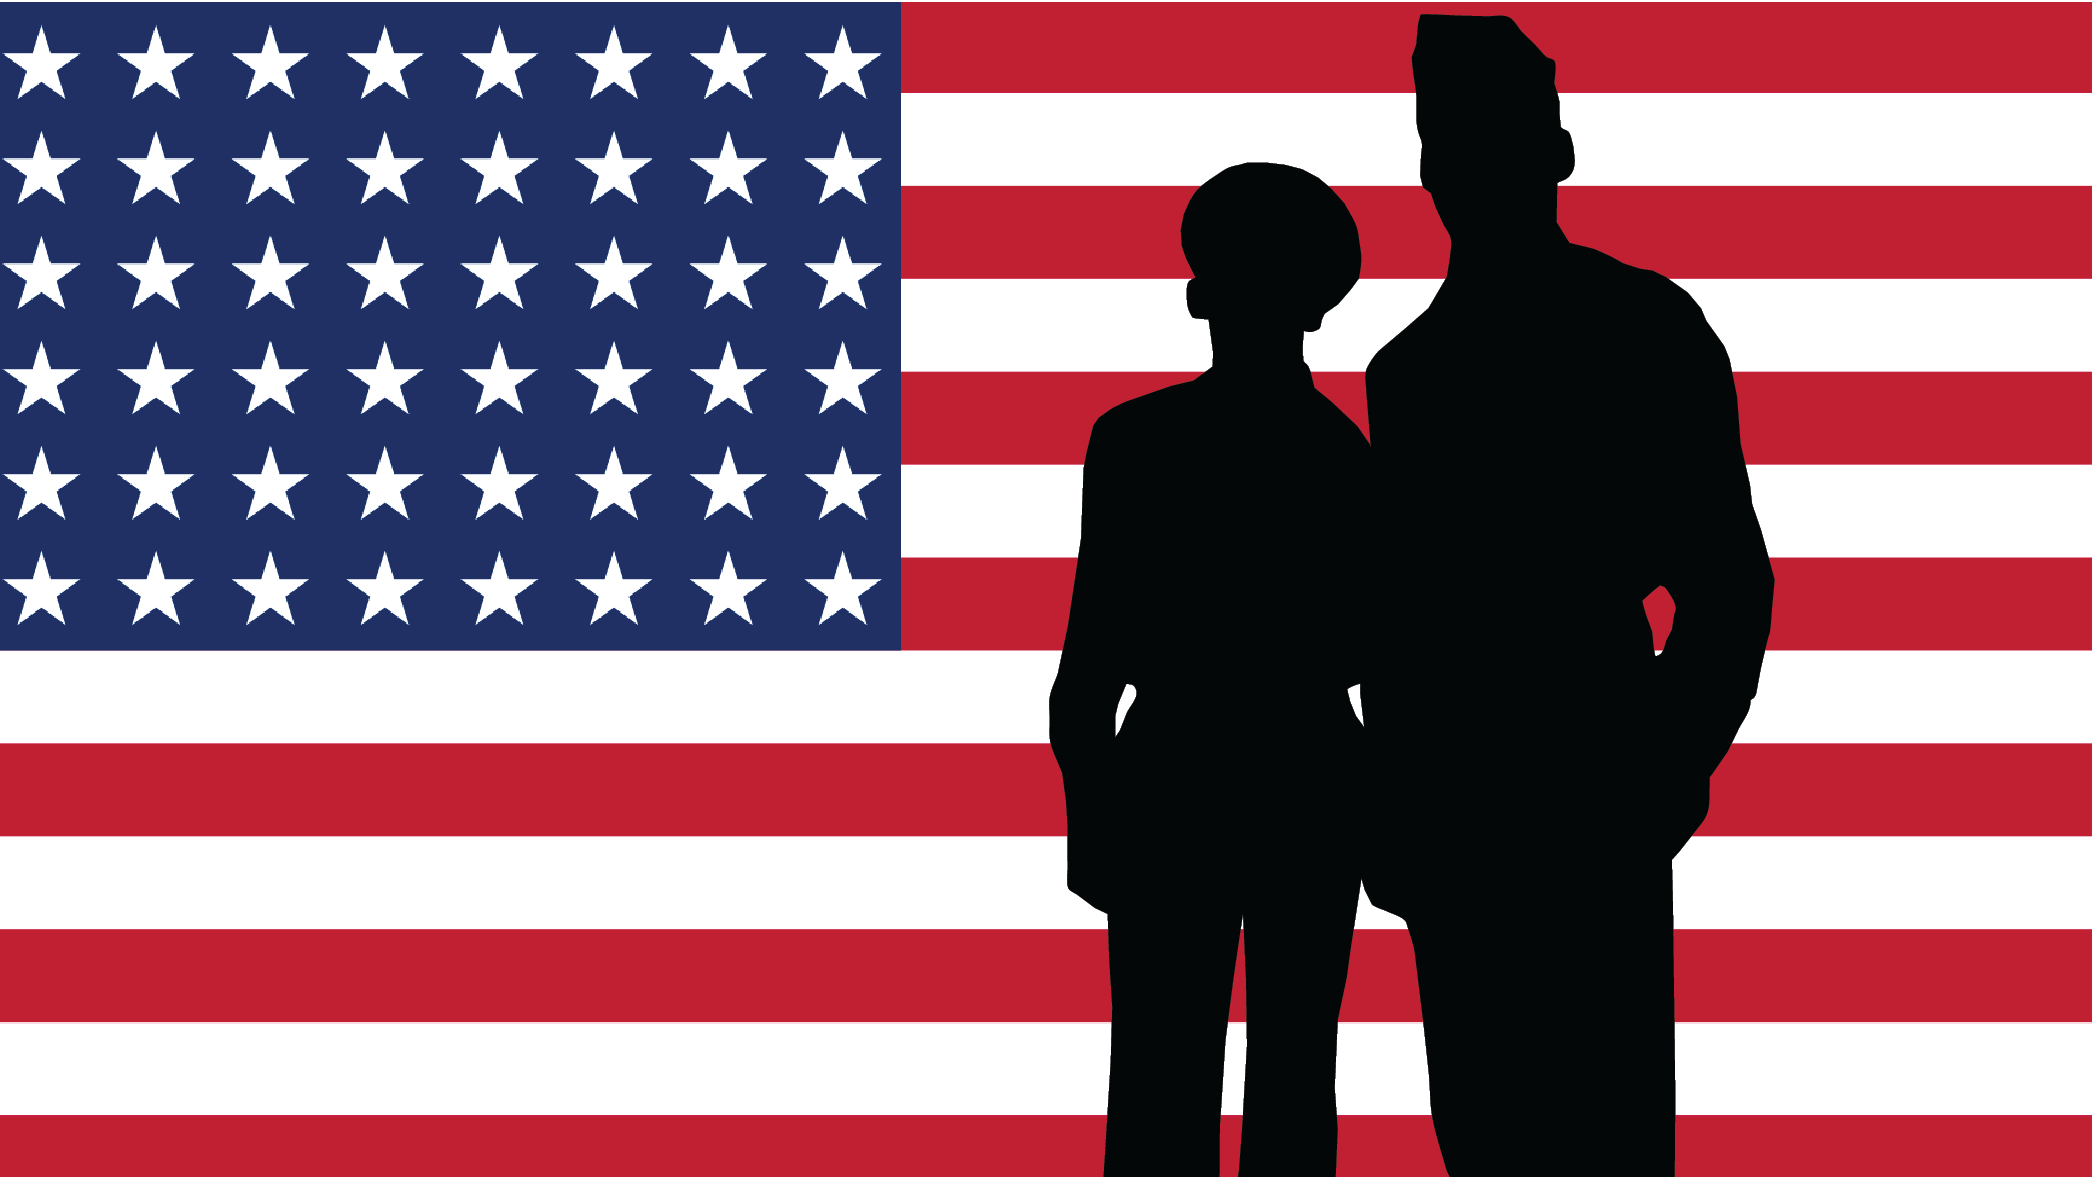 Two silhouettes of uniformed people in front of a 48 star flag